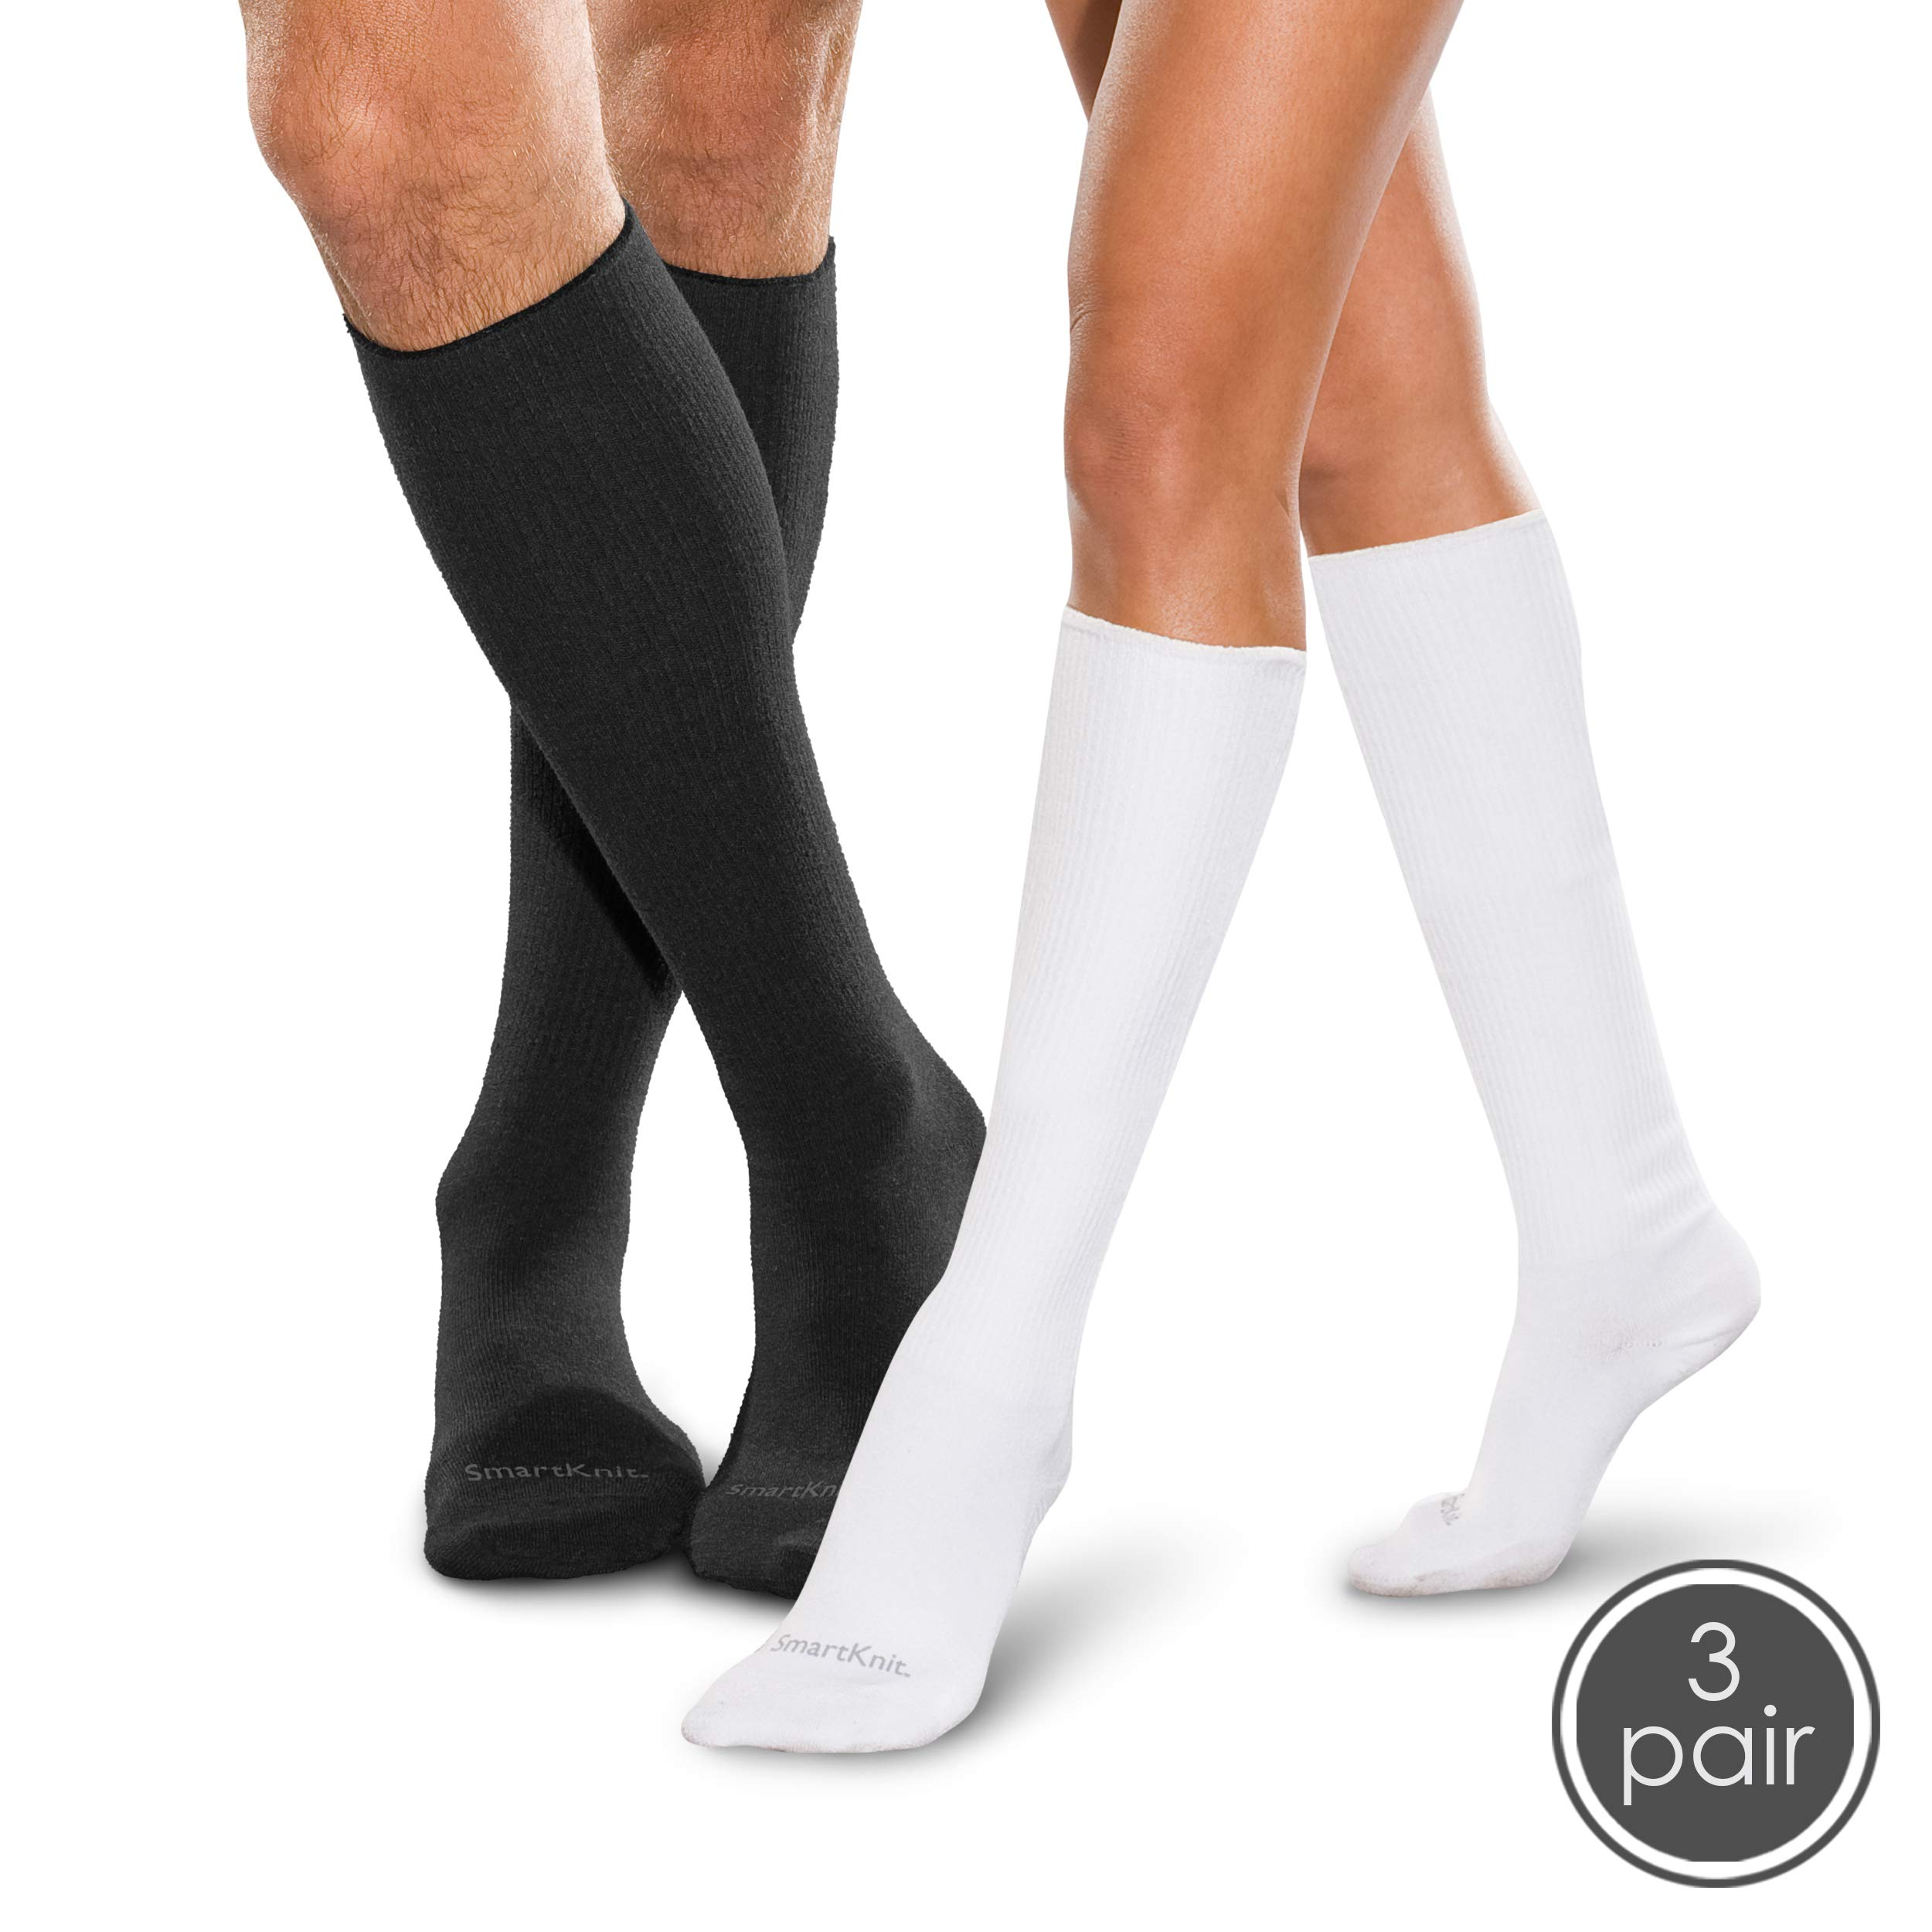 SmartKnit Seamless Diabetic Over-The-Calf Socks- 3 Pack - X - Large - Black White & White by SmartKnit